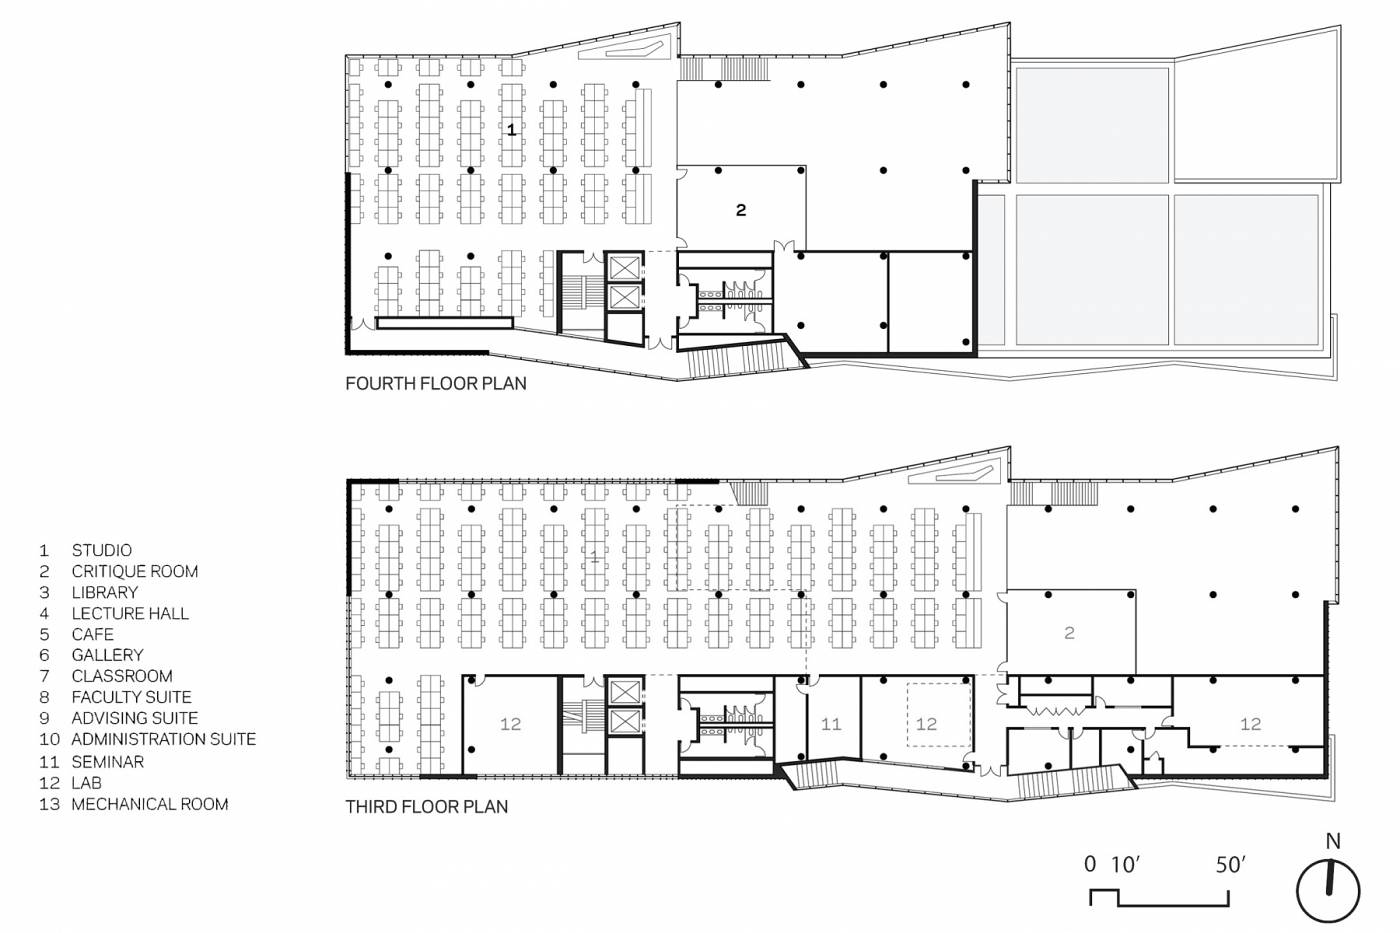 Architectural Drawings: 10 Modern Architecture Schools in